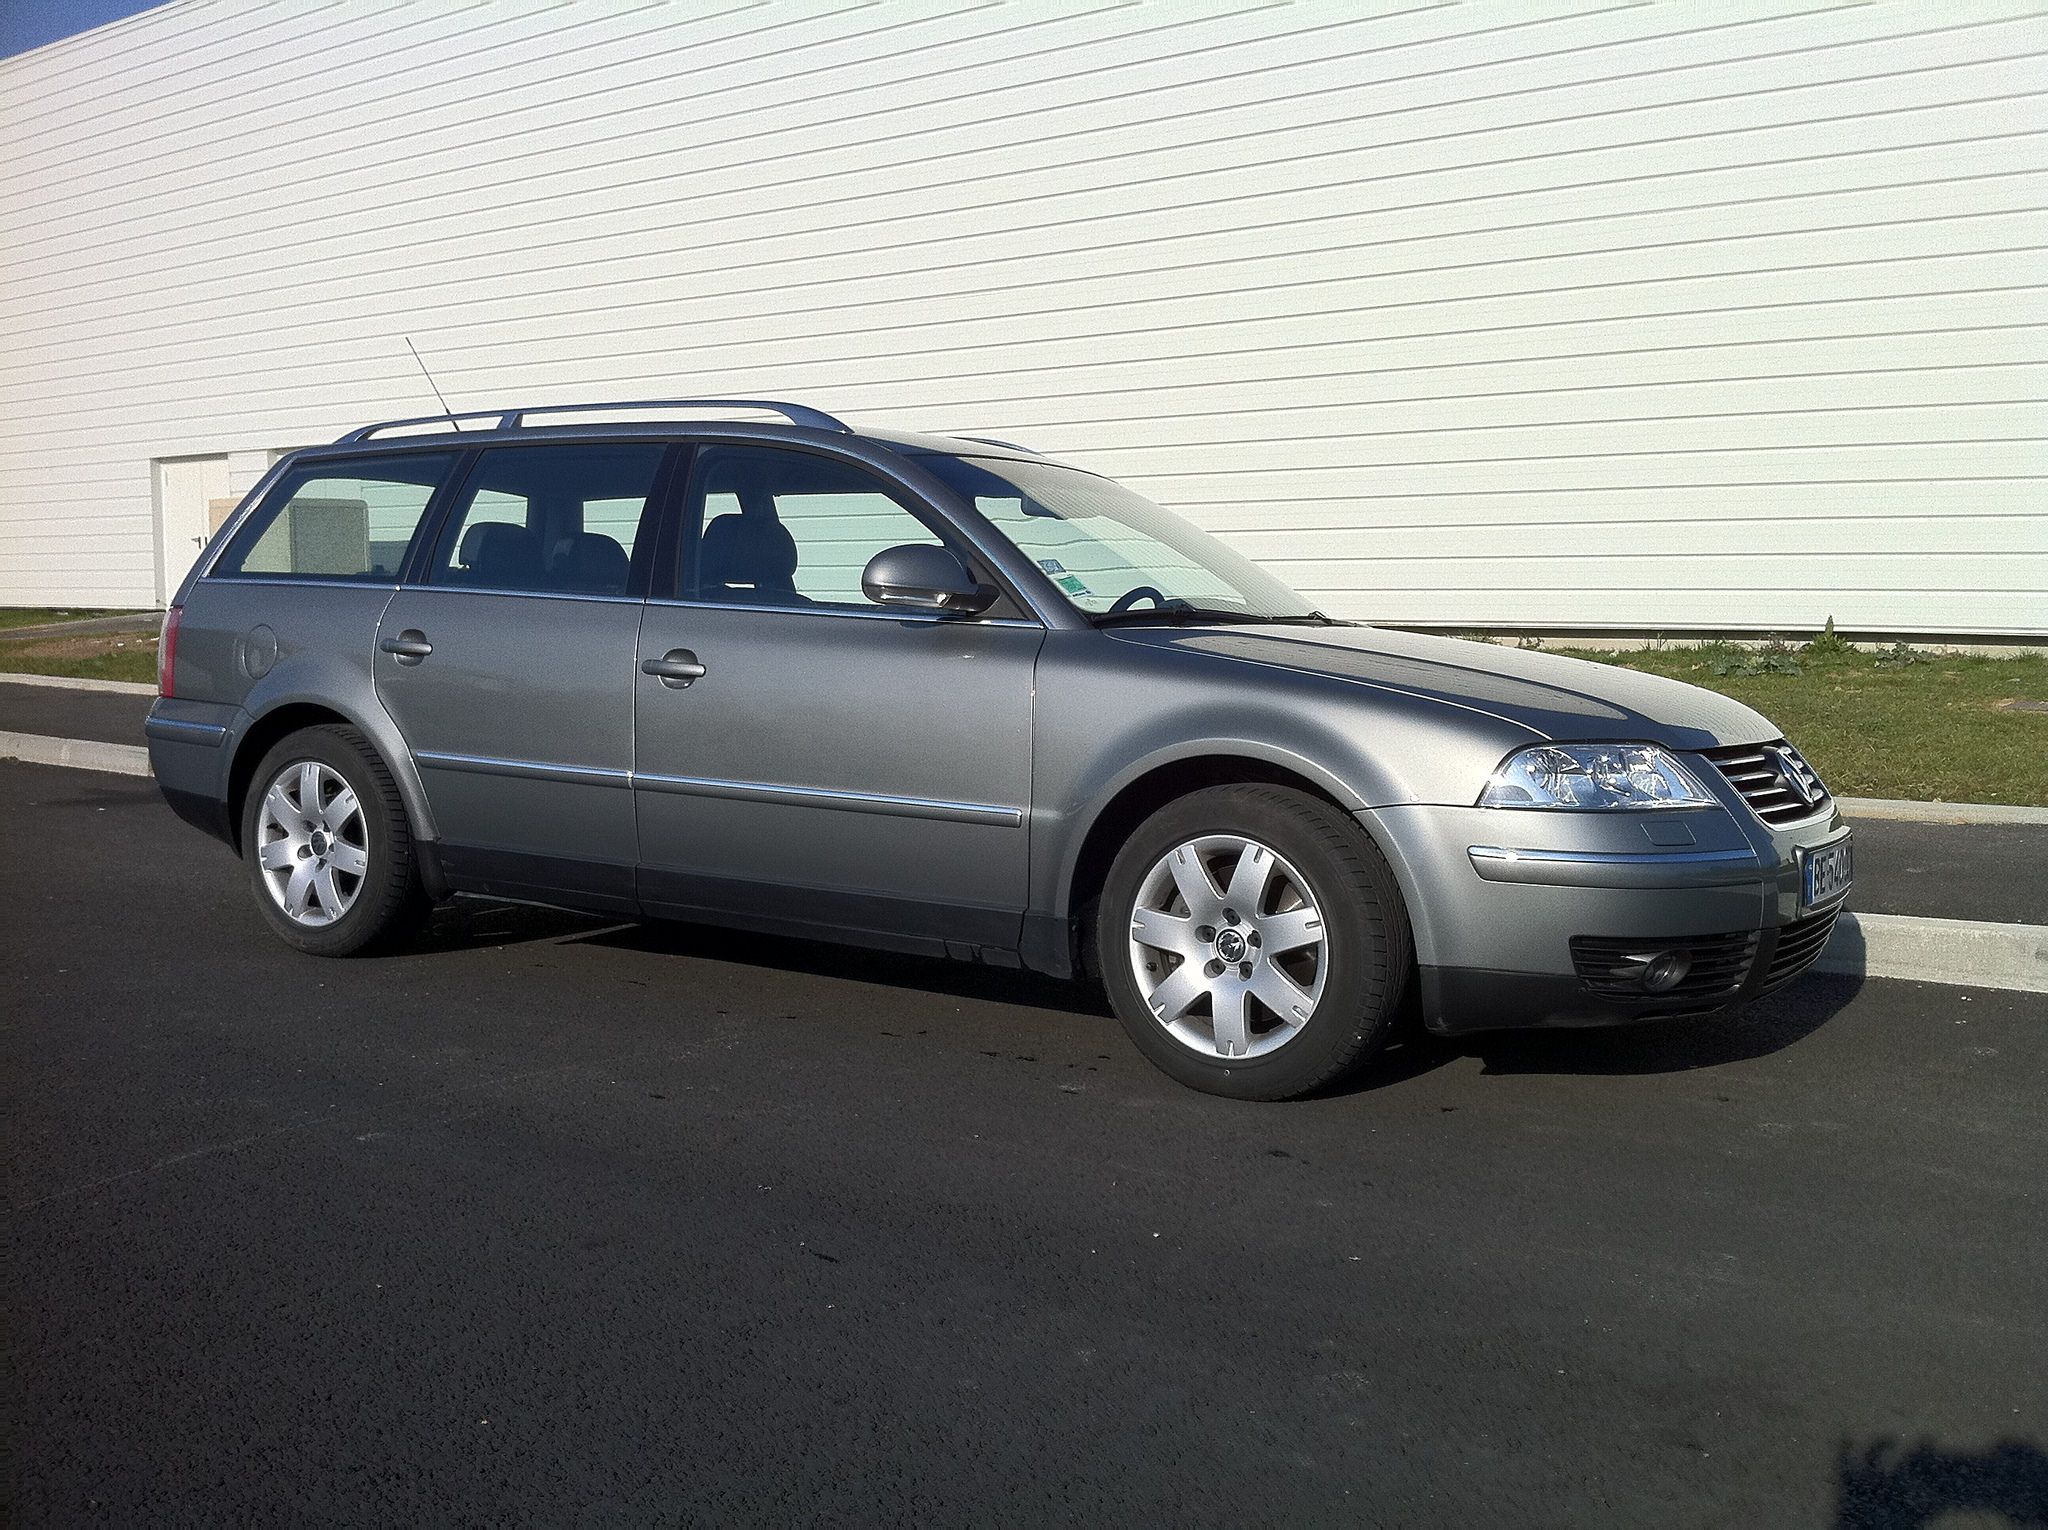 VW passat V6 4motion